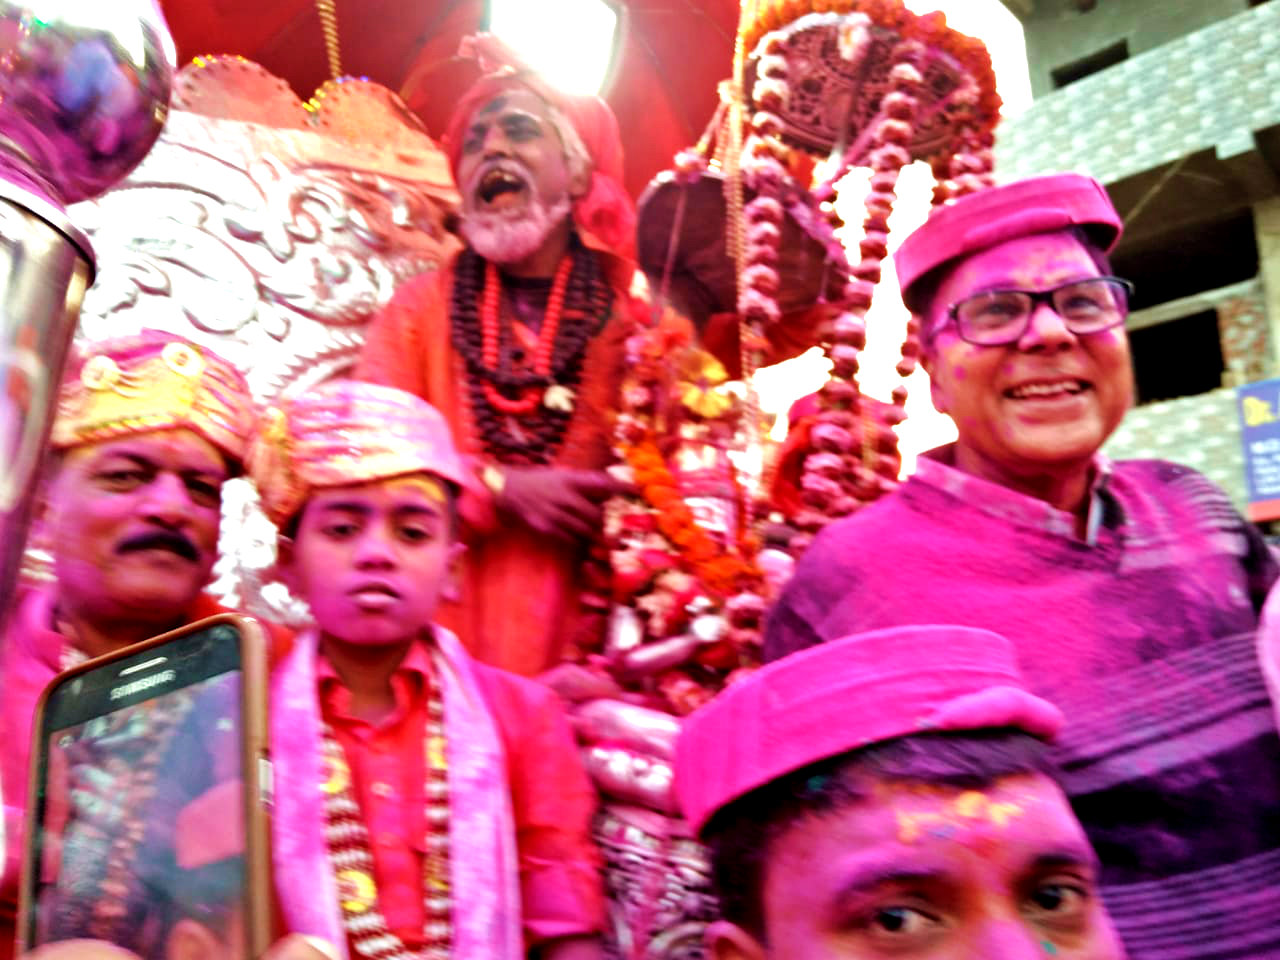 Dr.Madhepuri along with S.D.M. Vrindalal and Kids in a Barat procession of Lord Shiva on the occasion of Mahashivratri at Singheshwar.